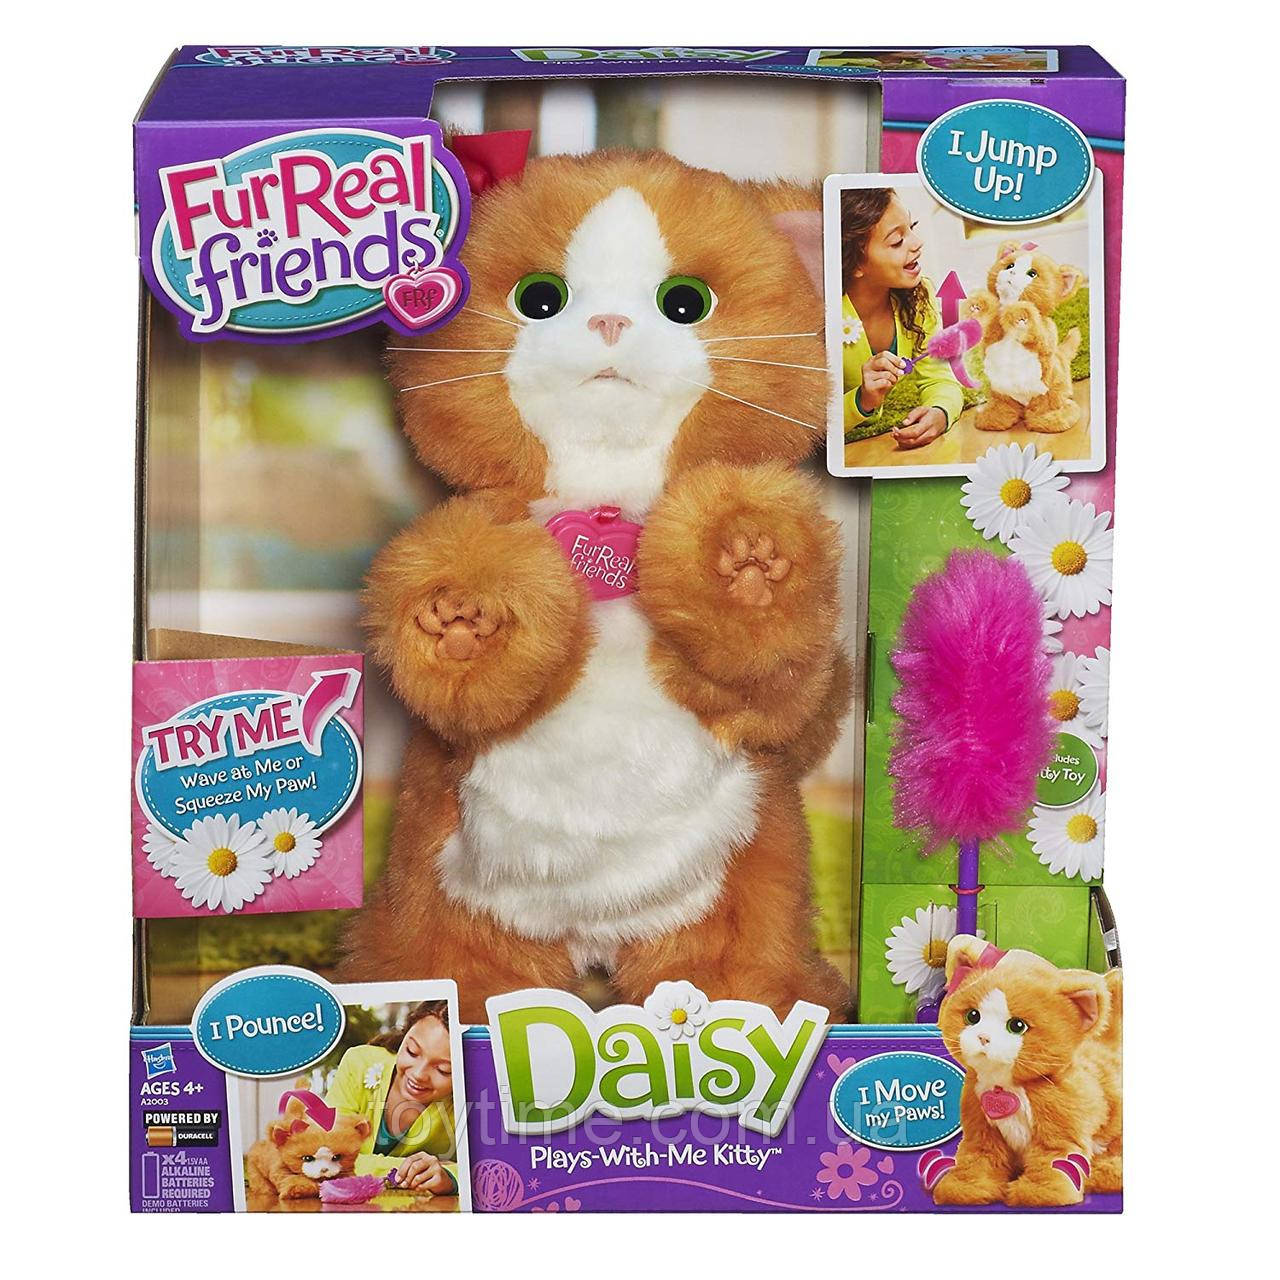 Интерактивная кошечка Дейзи от FurReal Friends Hasbro  / FurReal Friends Daisy Plays-With-Me Kitty Toy